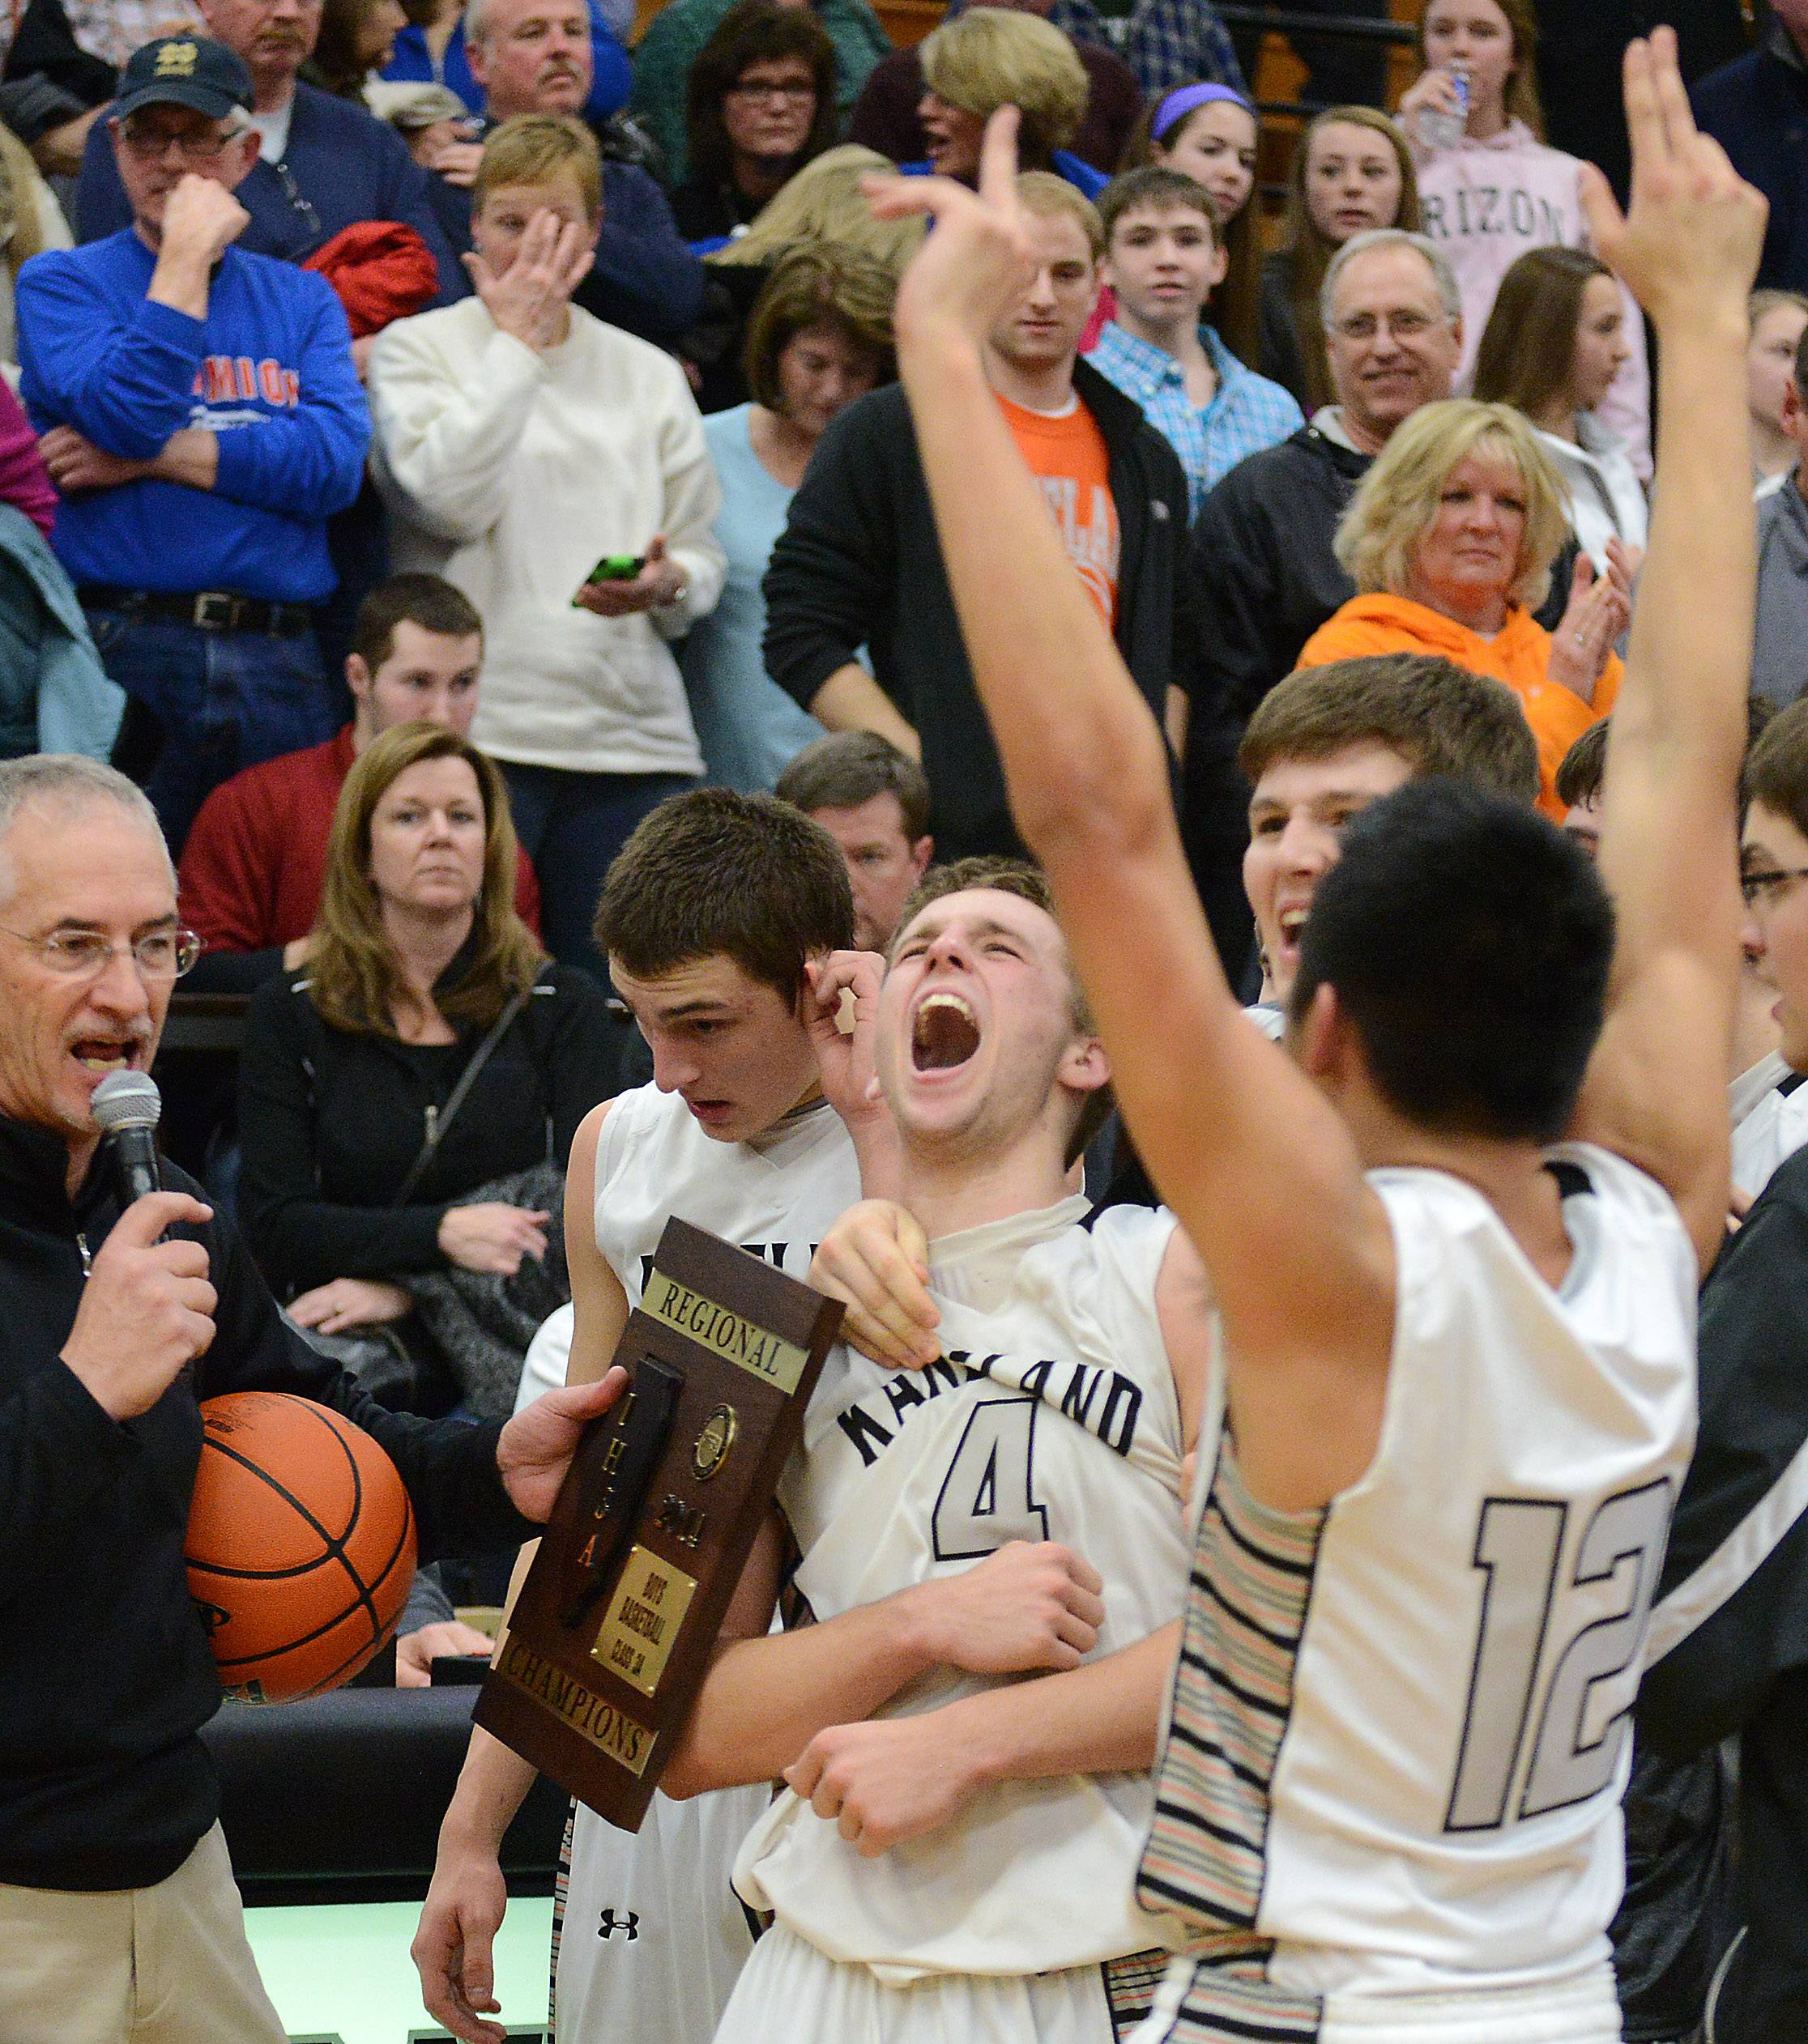 Kaneland players Drew David (4) and Ben Barnes (12) celebrate as they're awarded the championship plaque after winning Friday's regional title game in Maple Park.